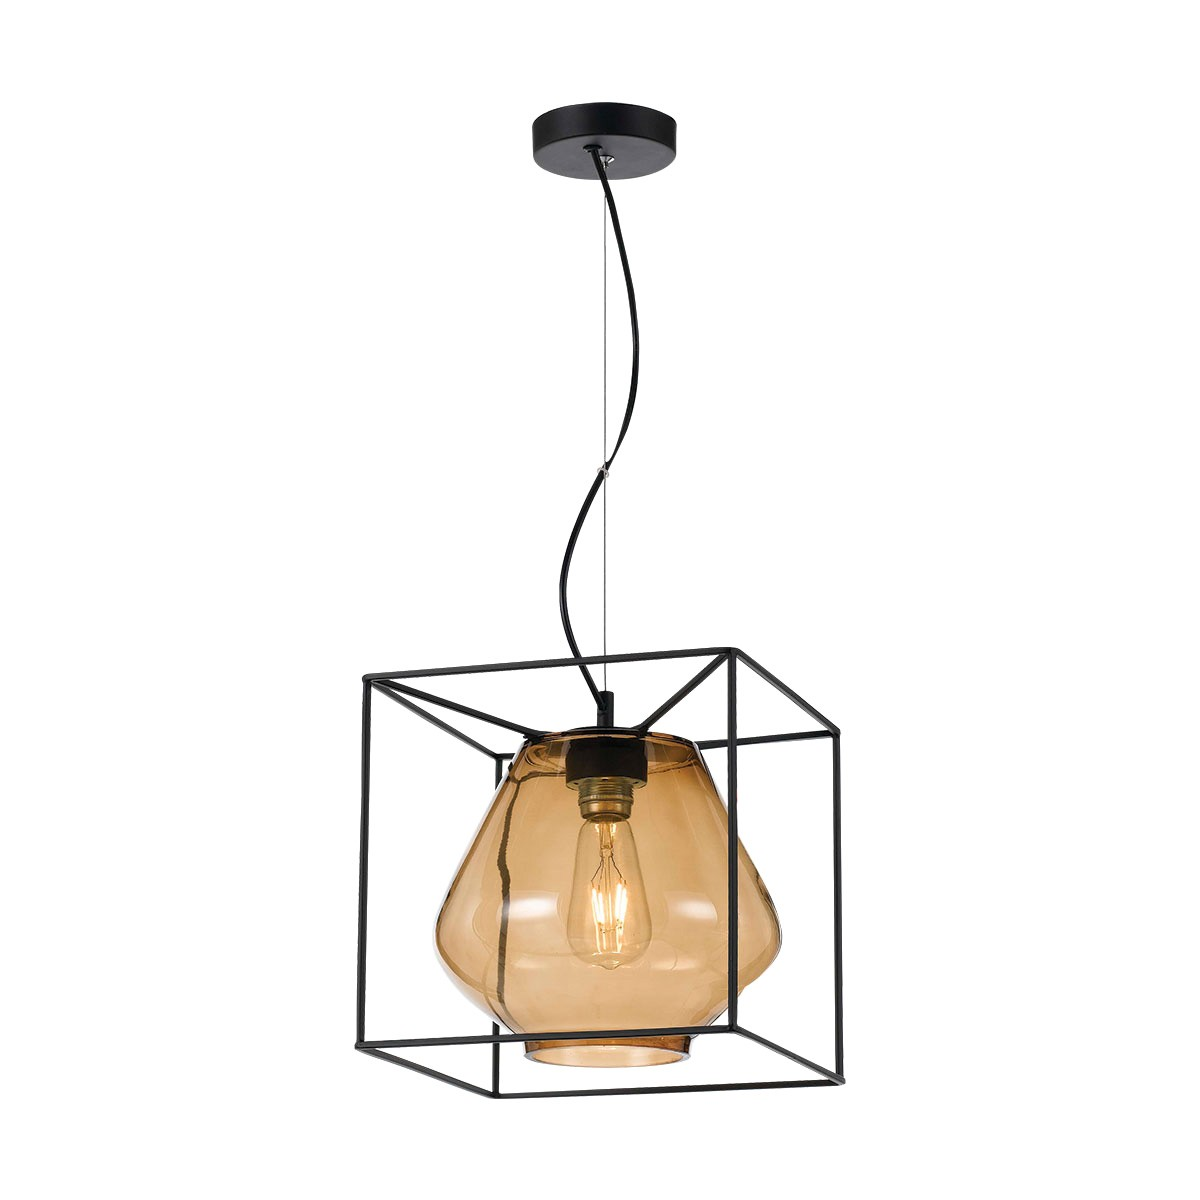 Sempre Metal & Glass Pendant Light, Amber / Black